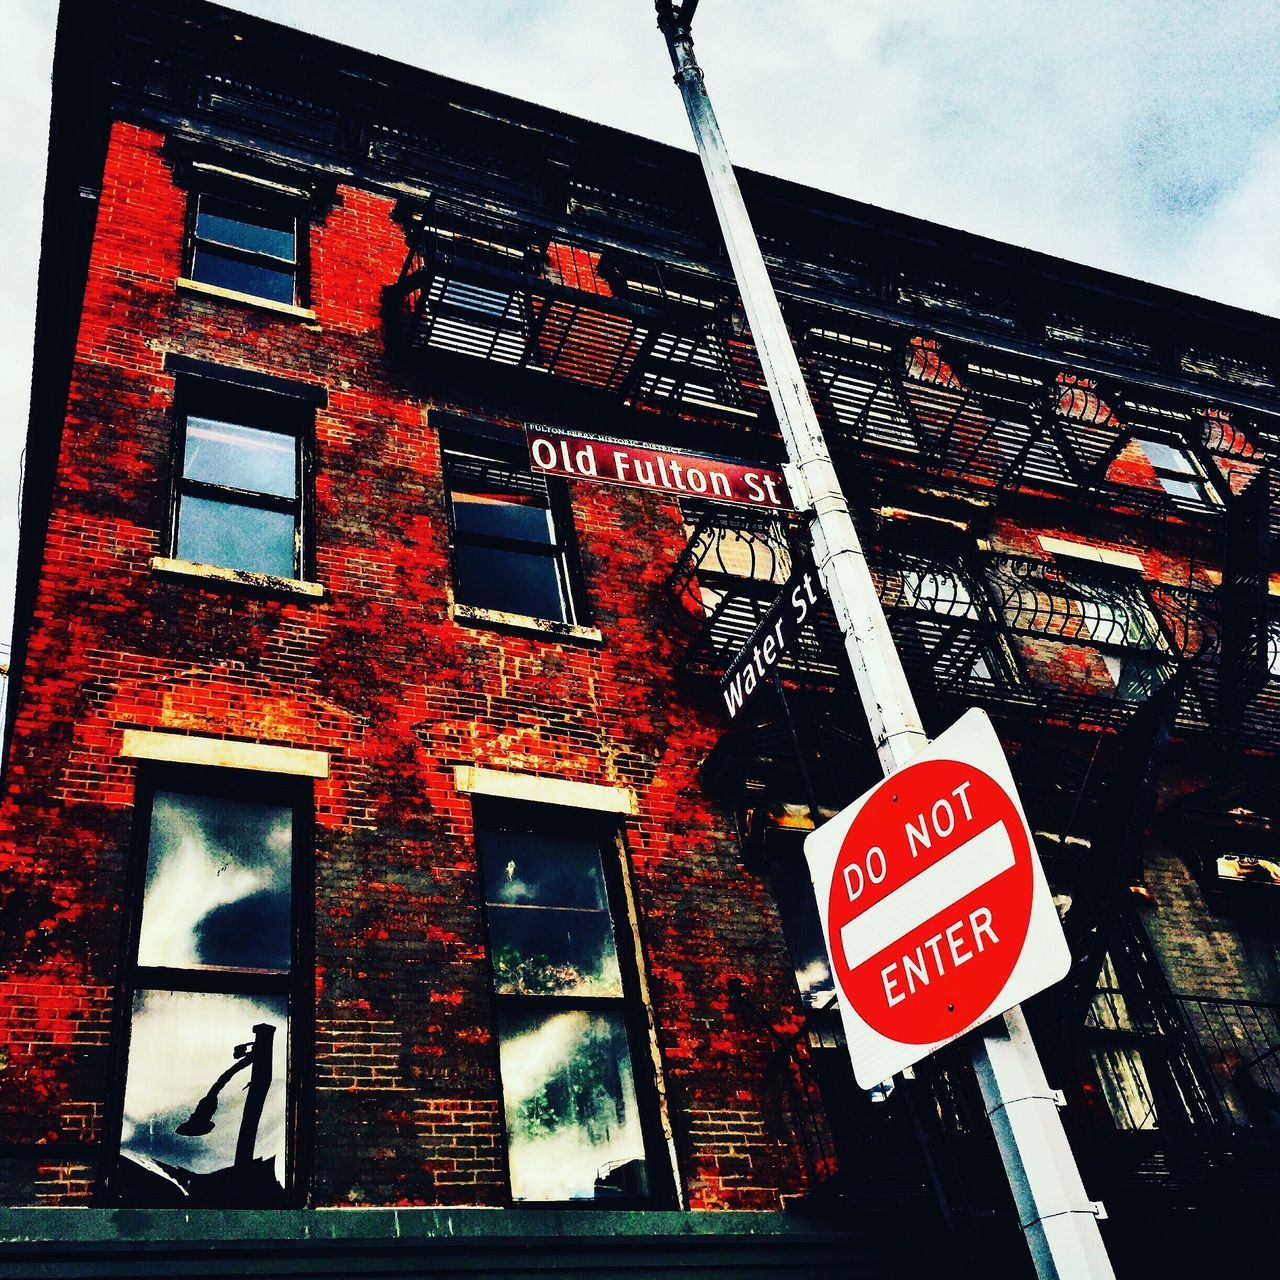 EyeEm No People Color Portrait Newyorkcity Architecture Photography Warning Sign Information Sign Low Angle View Sky Day Built Structure No Parking Sign Architecture Building Exterior Text Road Sign Communication Outdoors